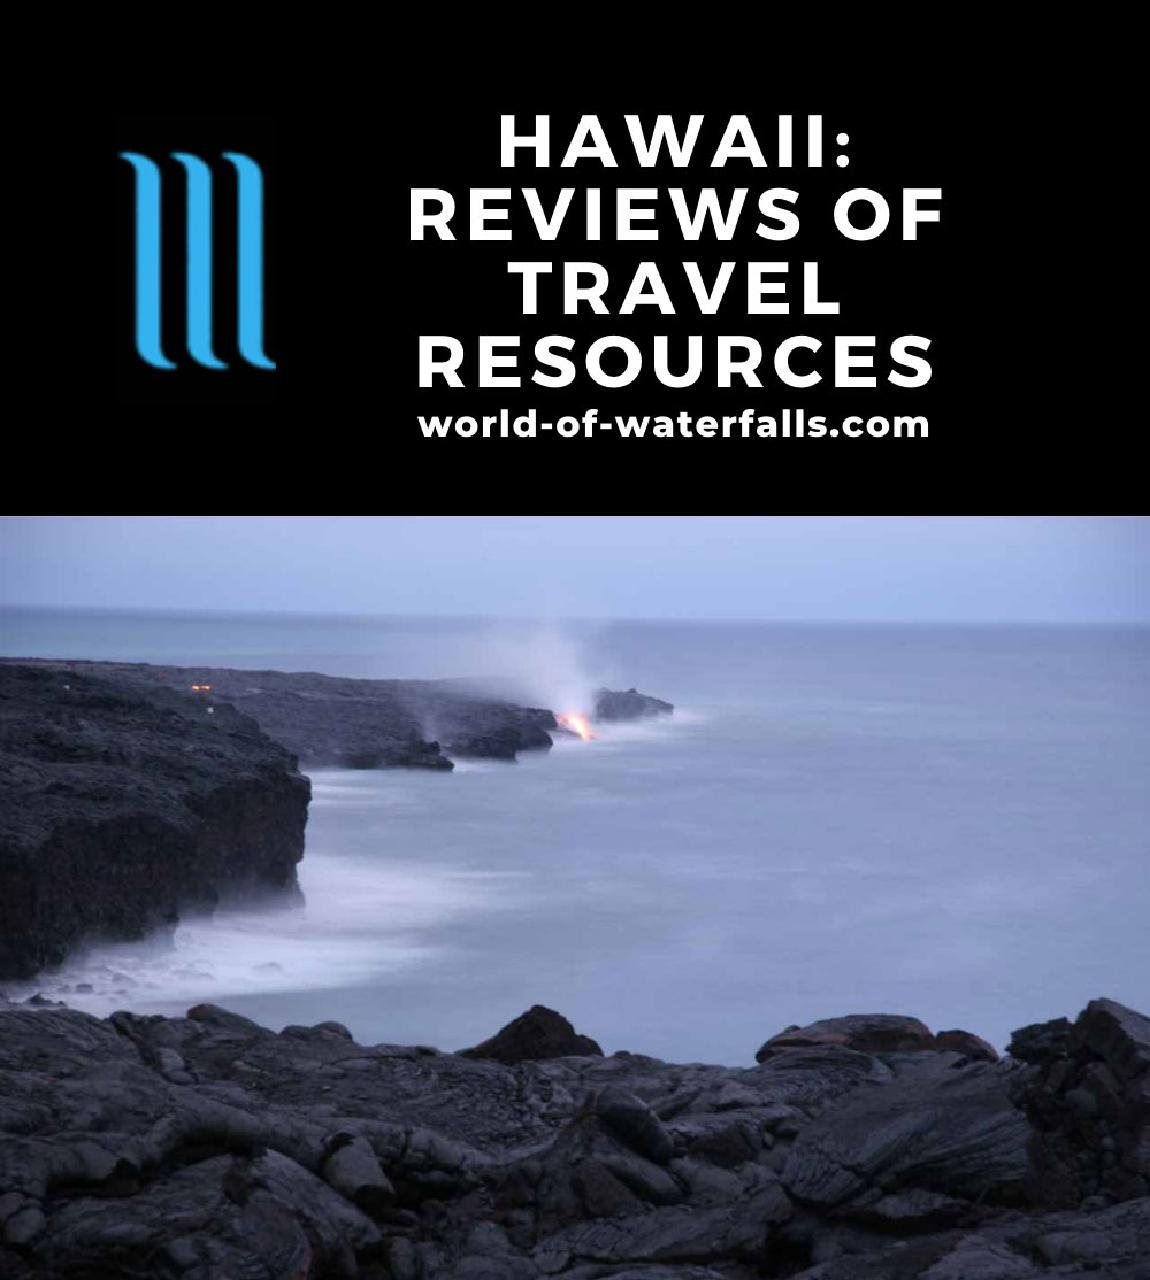 Hawaii: Reviews of Travel Resources